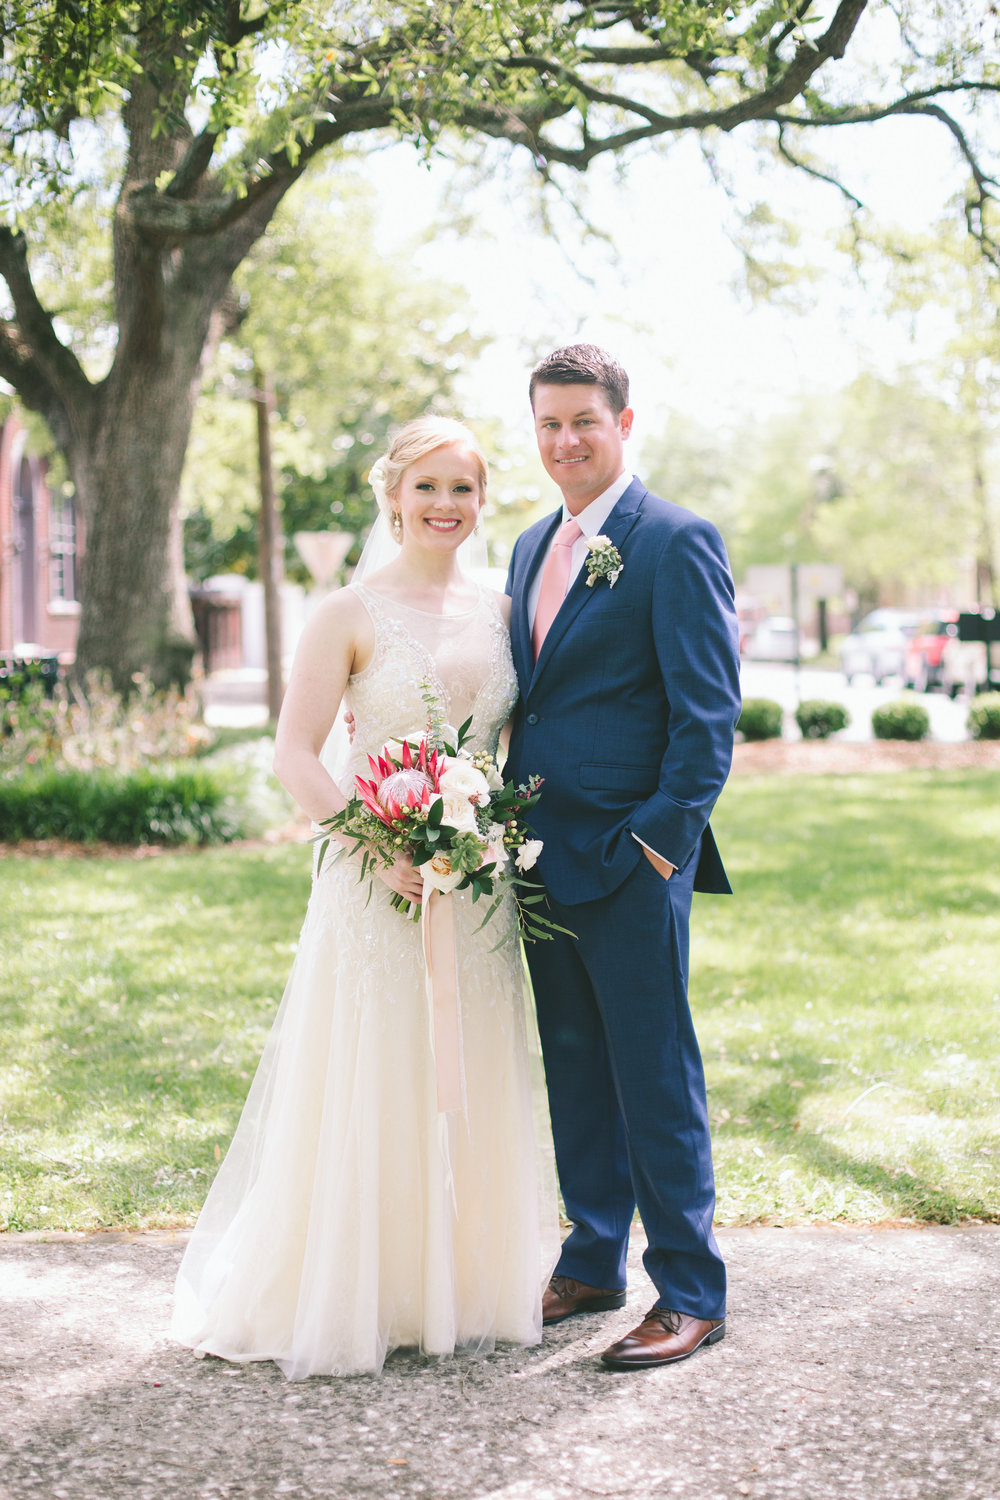 allison-blake-ivory-and-beau-bridal-boutique-savannah-wedding-planner-savannah-florist-jenna-davis-photography-cha-bella-wedding-warren-square-wedding-savannah-square-wedding-savannah-bridal-savannah-weddings-gettin-ready-14.jpg